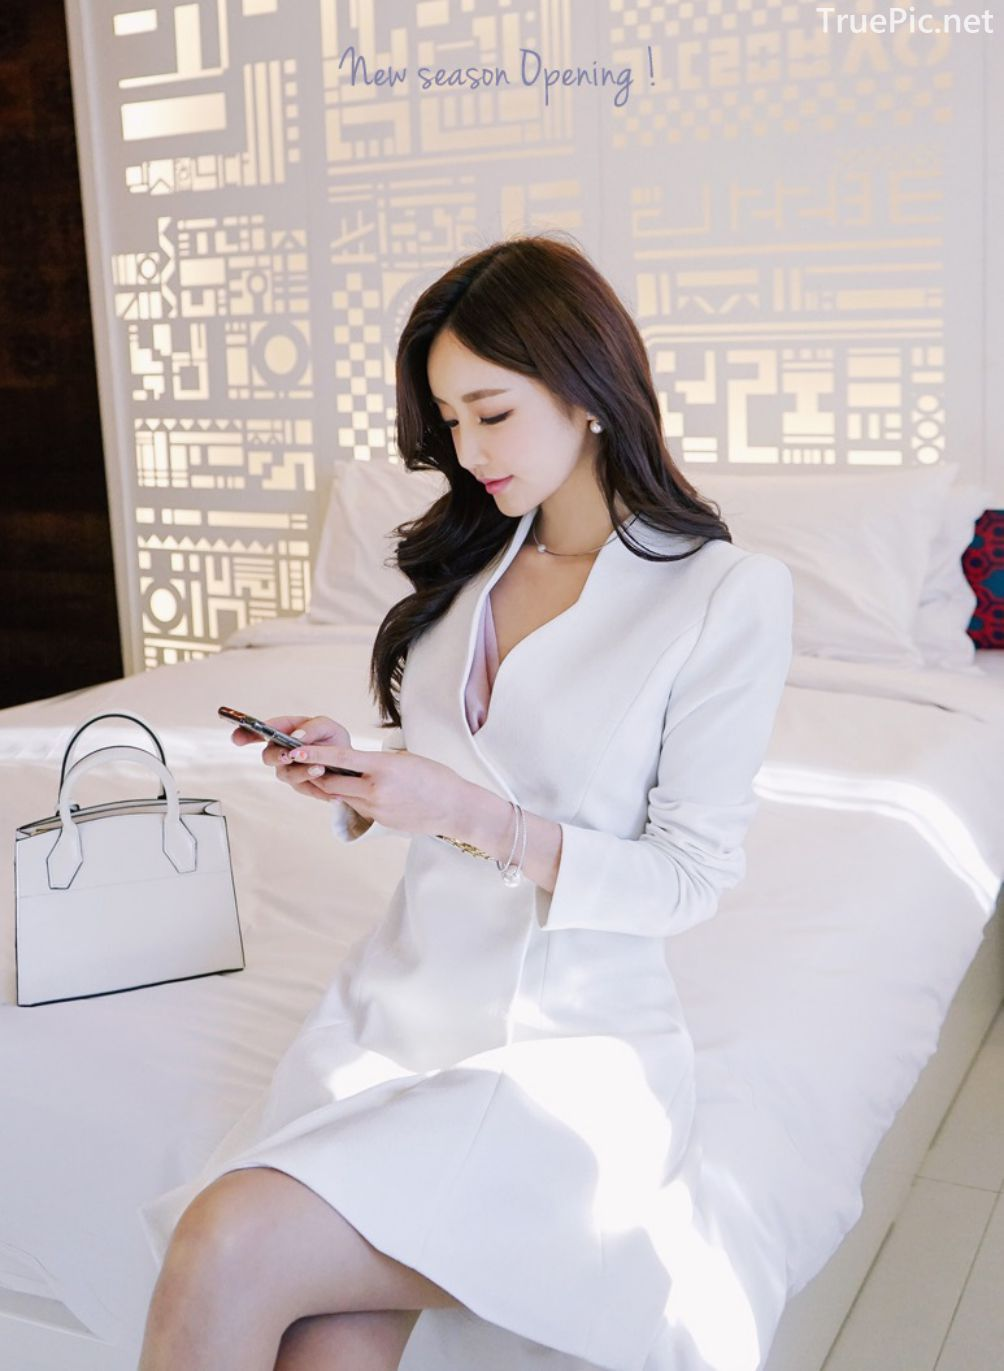 Son-Yoon-Joo-beautiful-photos-Indoor-Photoshoot-Collection-Korean-Fashion-and-Model-TruePic.net- Picture 10